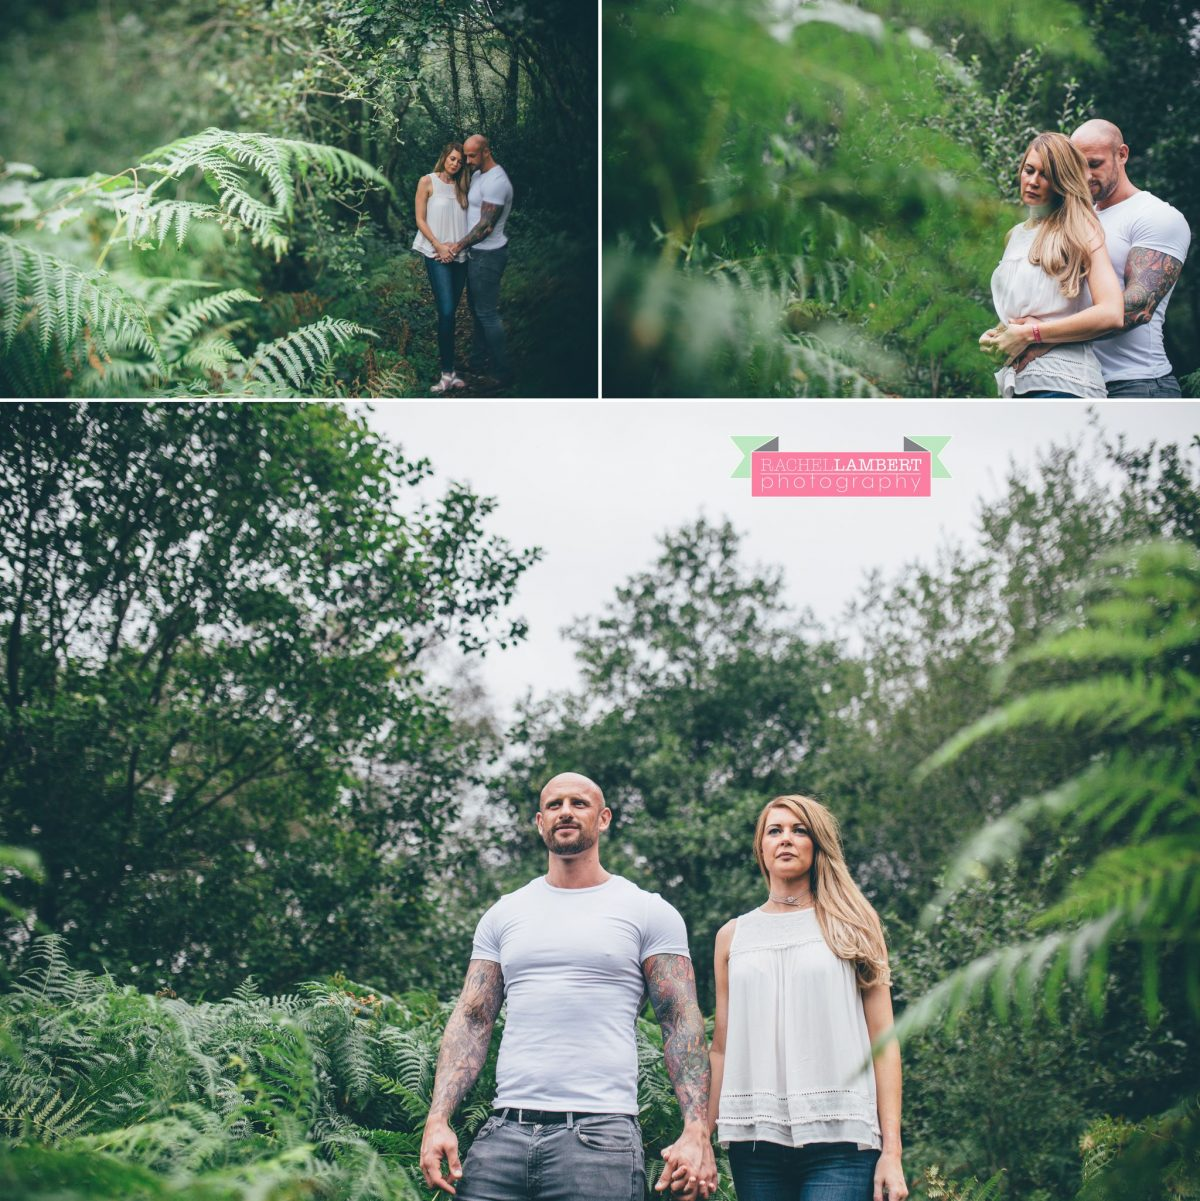 welsh_wedding_photographer_rachel_lambert_photography_cardiff_engagement_shoot_rhiannon_gavin_ 8